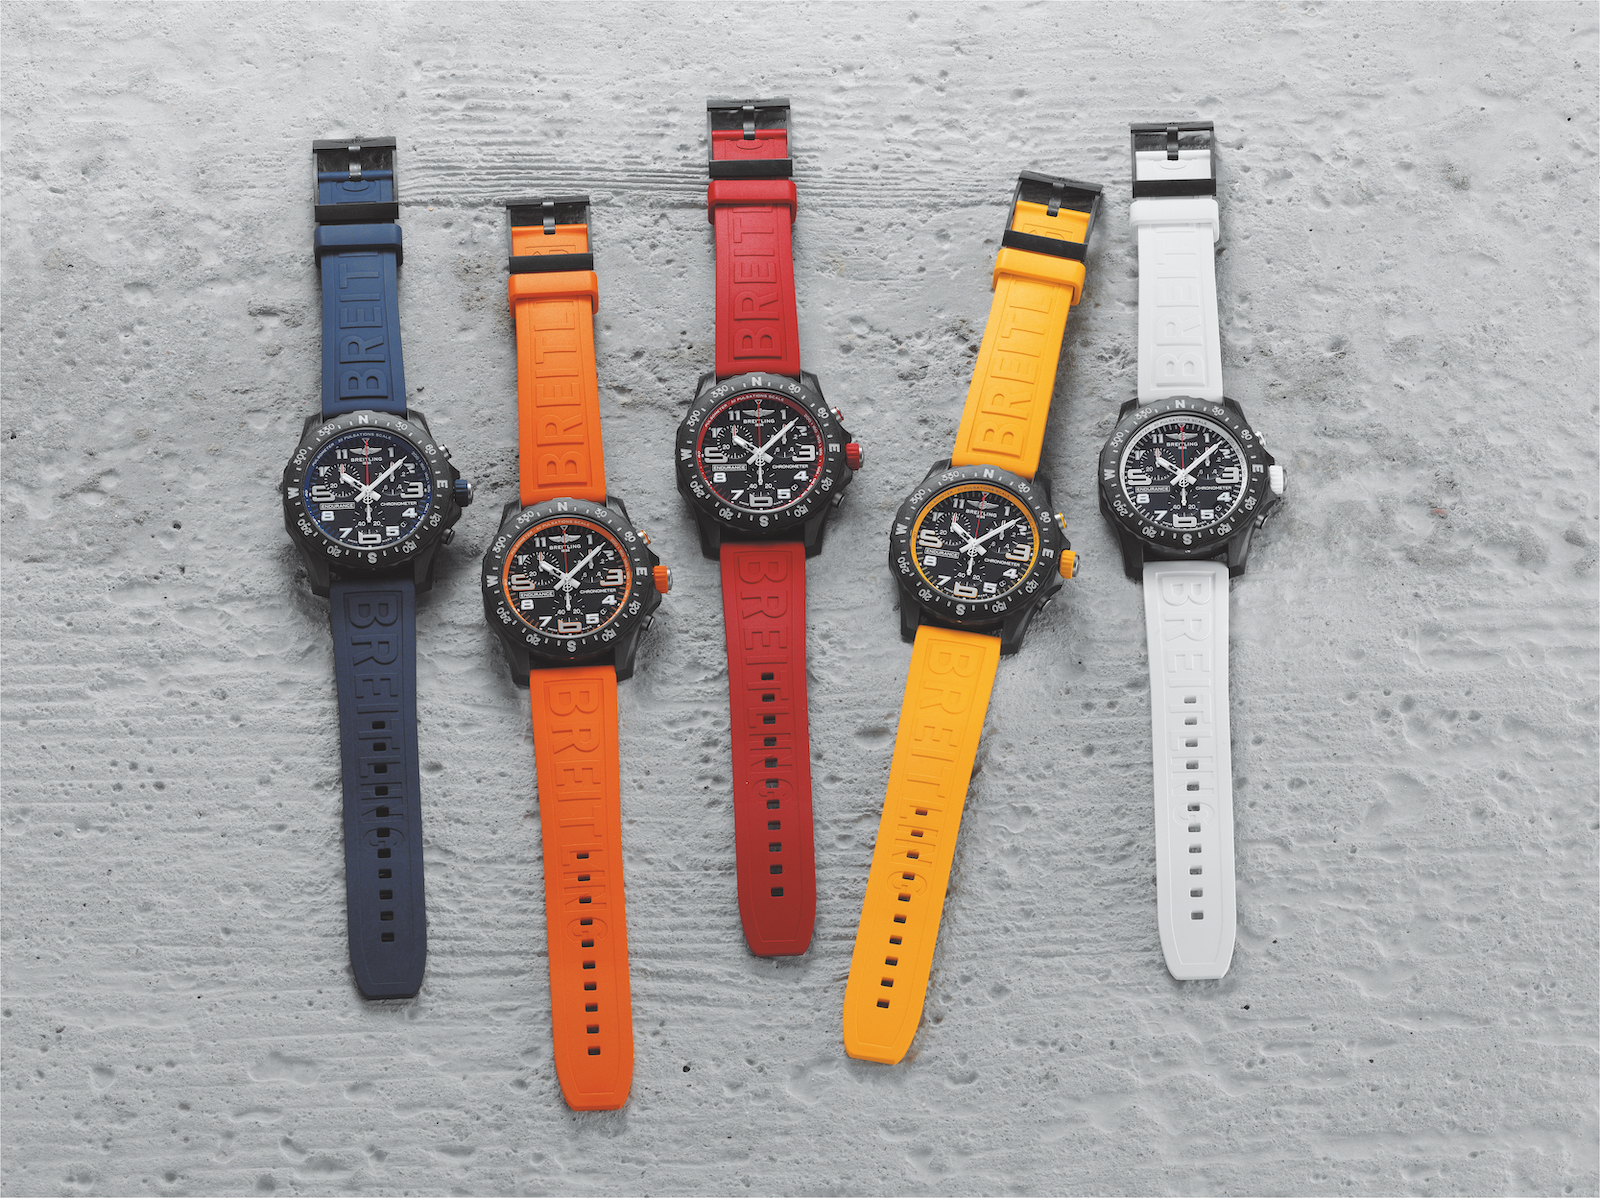 The Breitling Collection